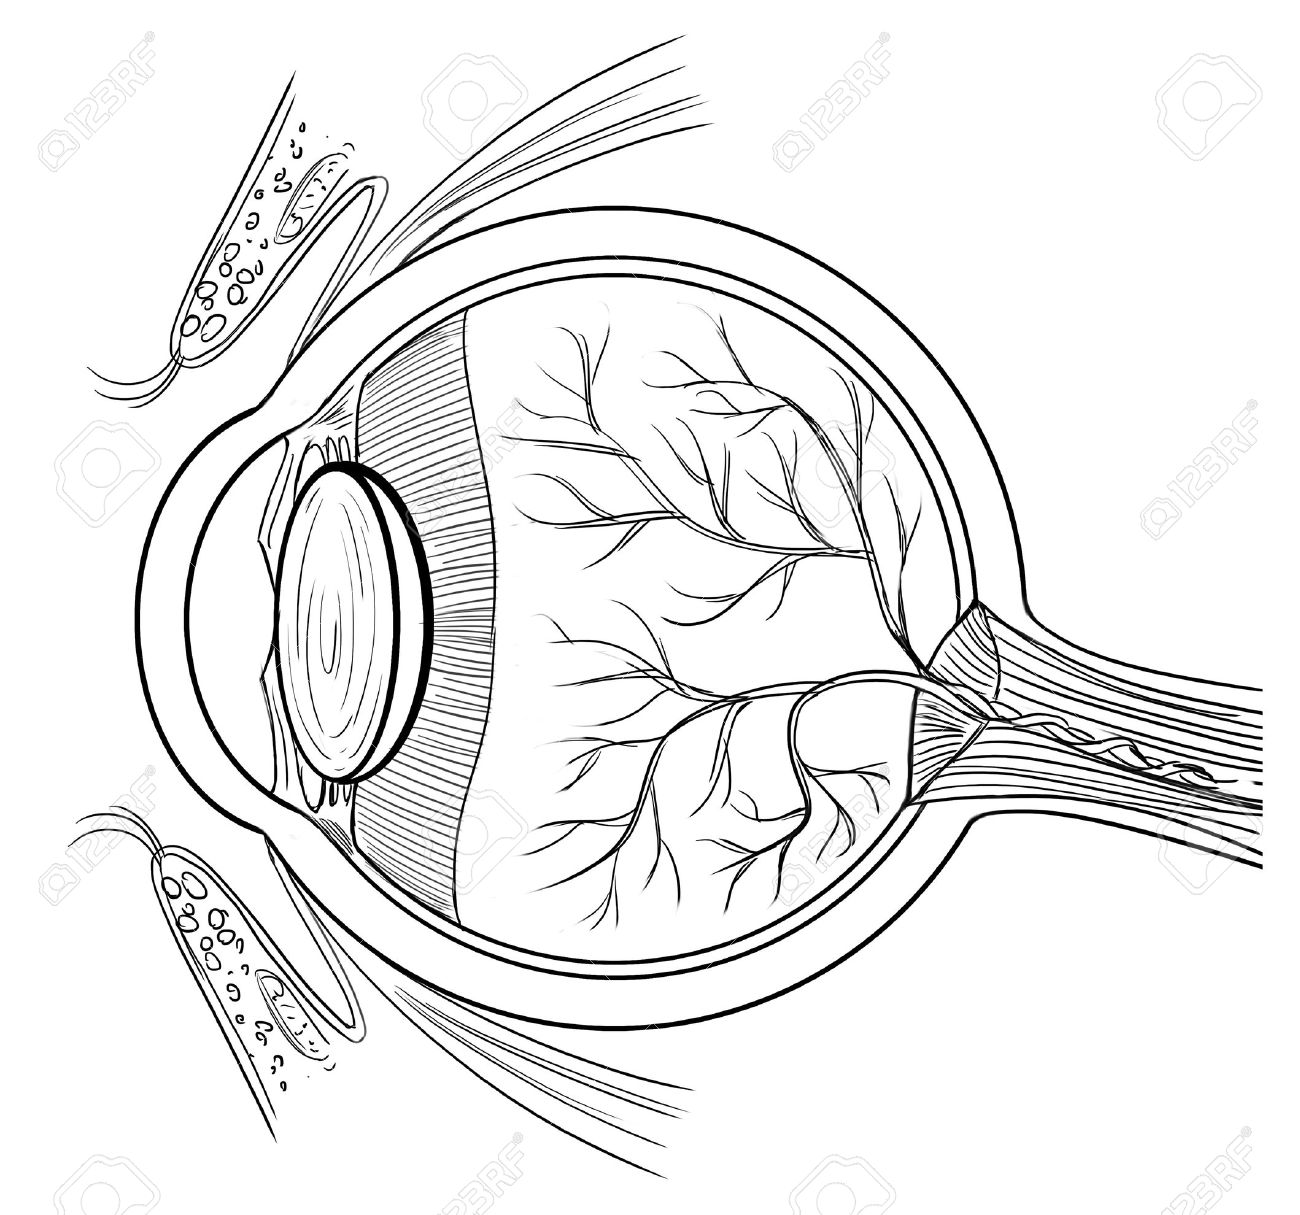 Outline Illustration Of The Human Eye Anatomy Royalty Free.